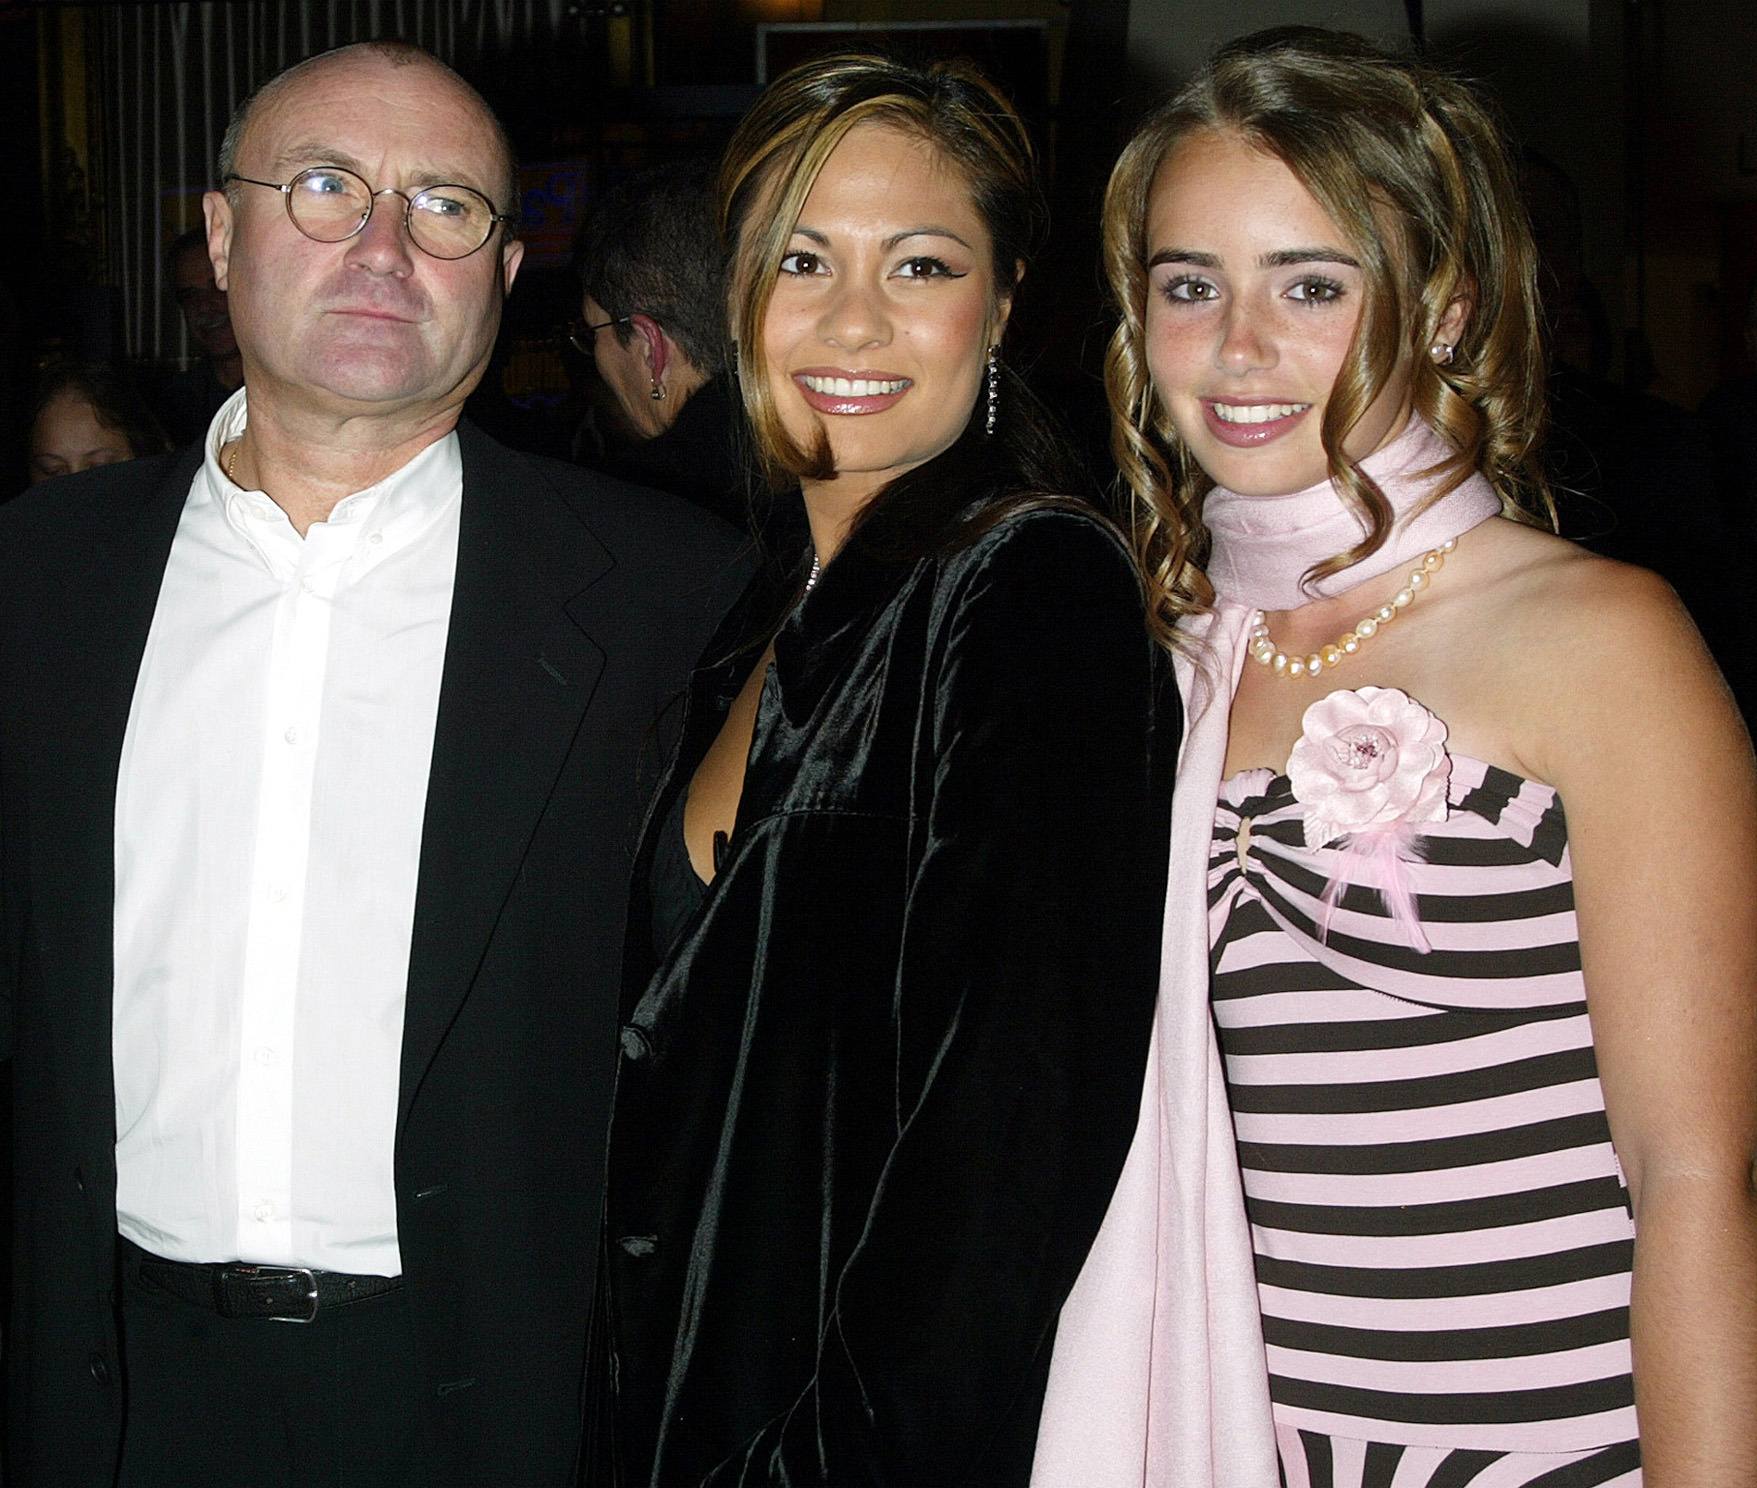 Phil Collins, wife Oriane, daughter Lily